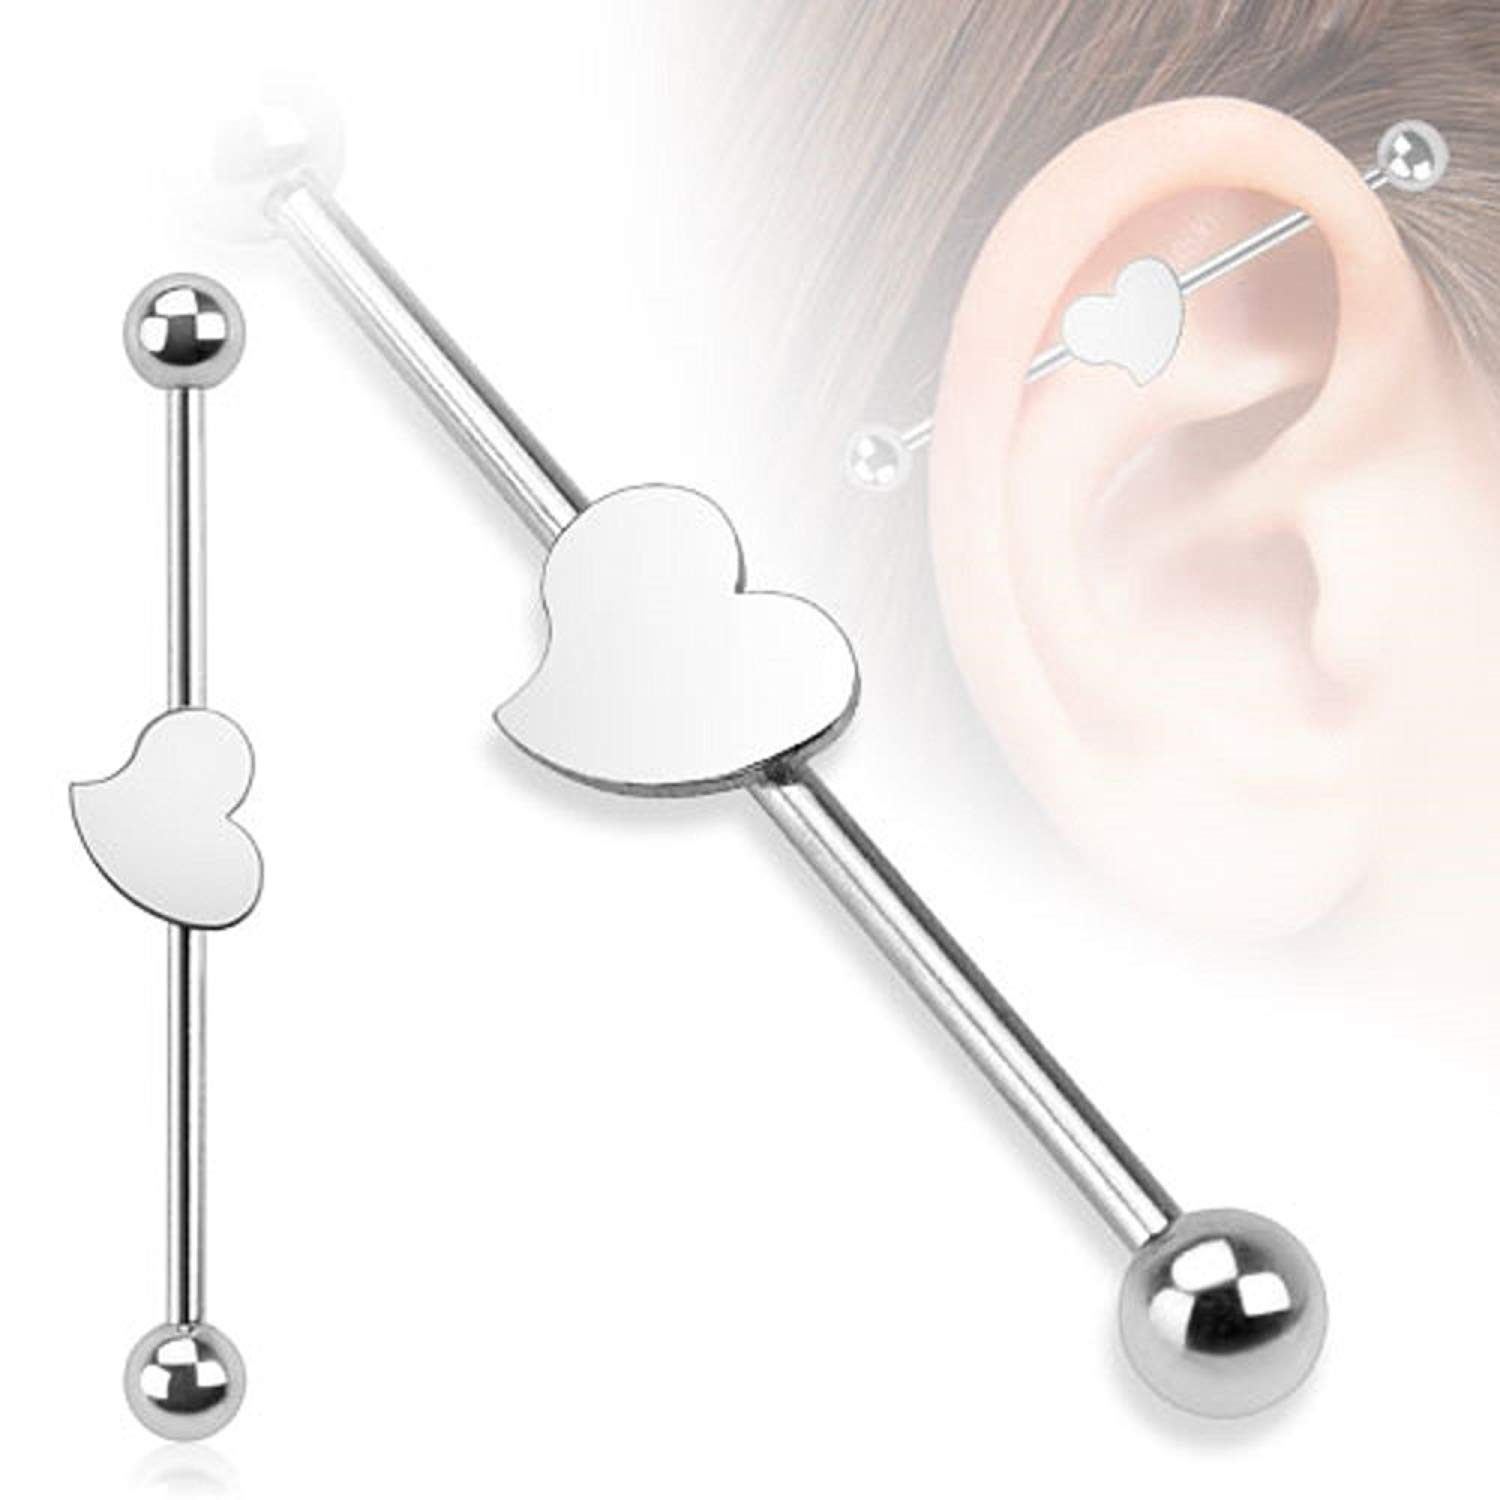 14G 1.5 Surgical Steel Heart Industrial Barbell Cartilage Ear Ring Body Jewelry Piercing Pair ATMUSA 2 PCS